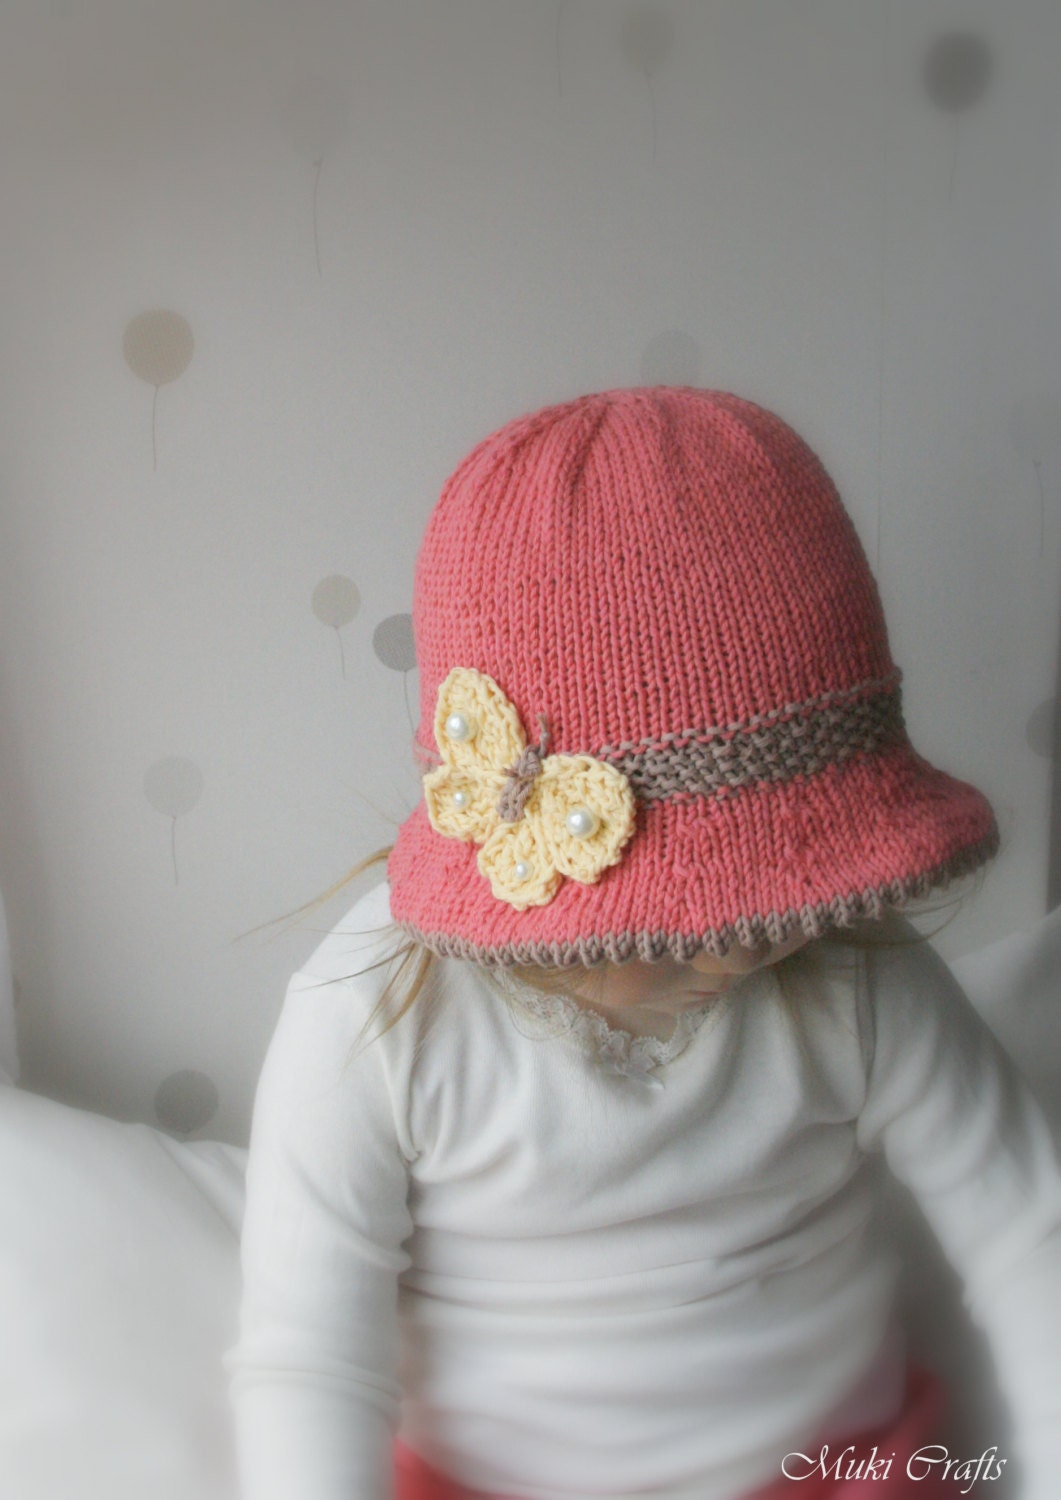 Loom Knit Baby Hat With Brim : Knitting pattern brim sun hat mary with a butterfly baby